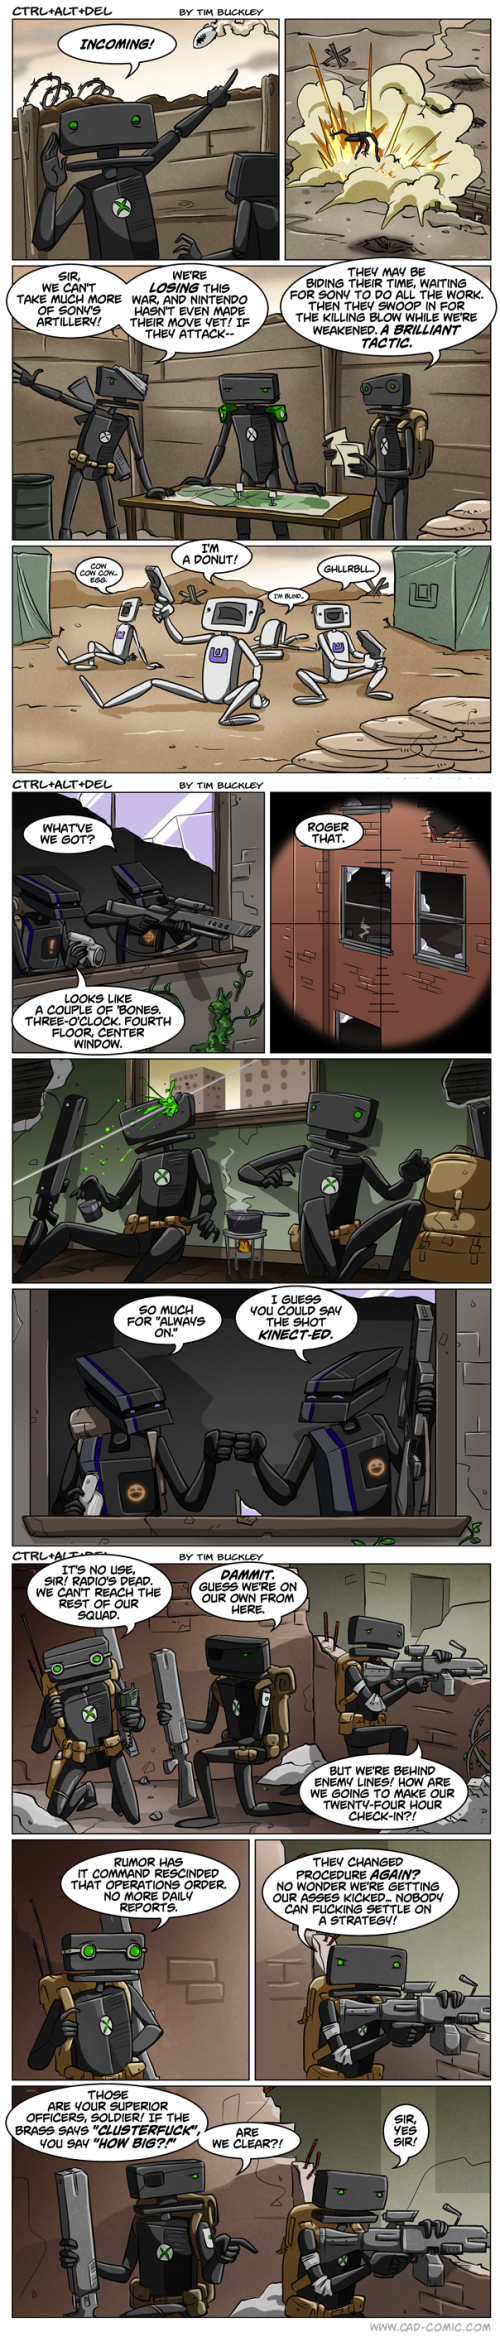 Console Wars 1-3